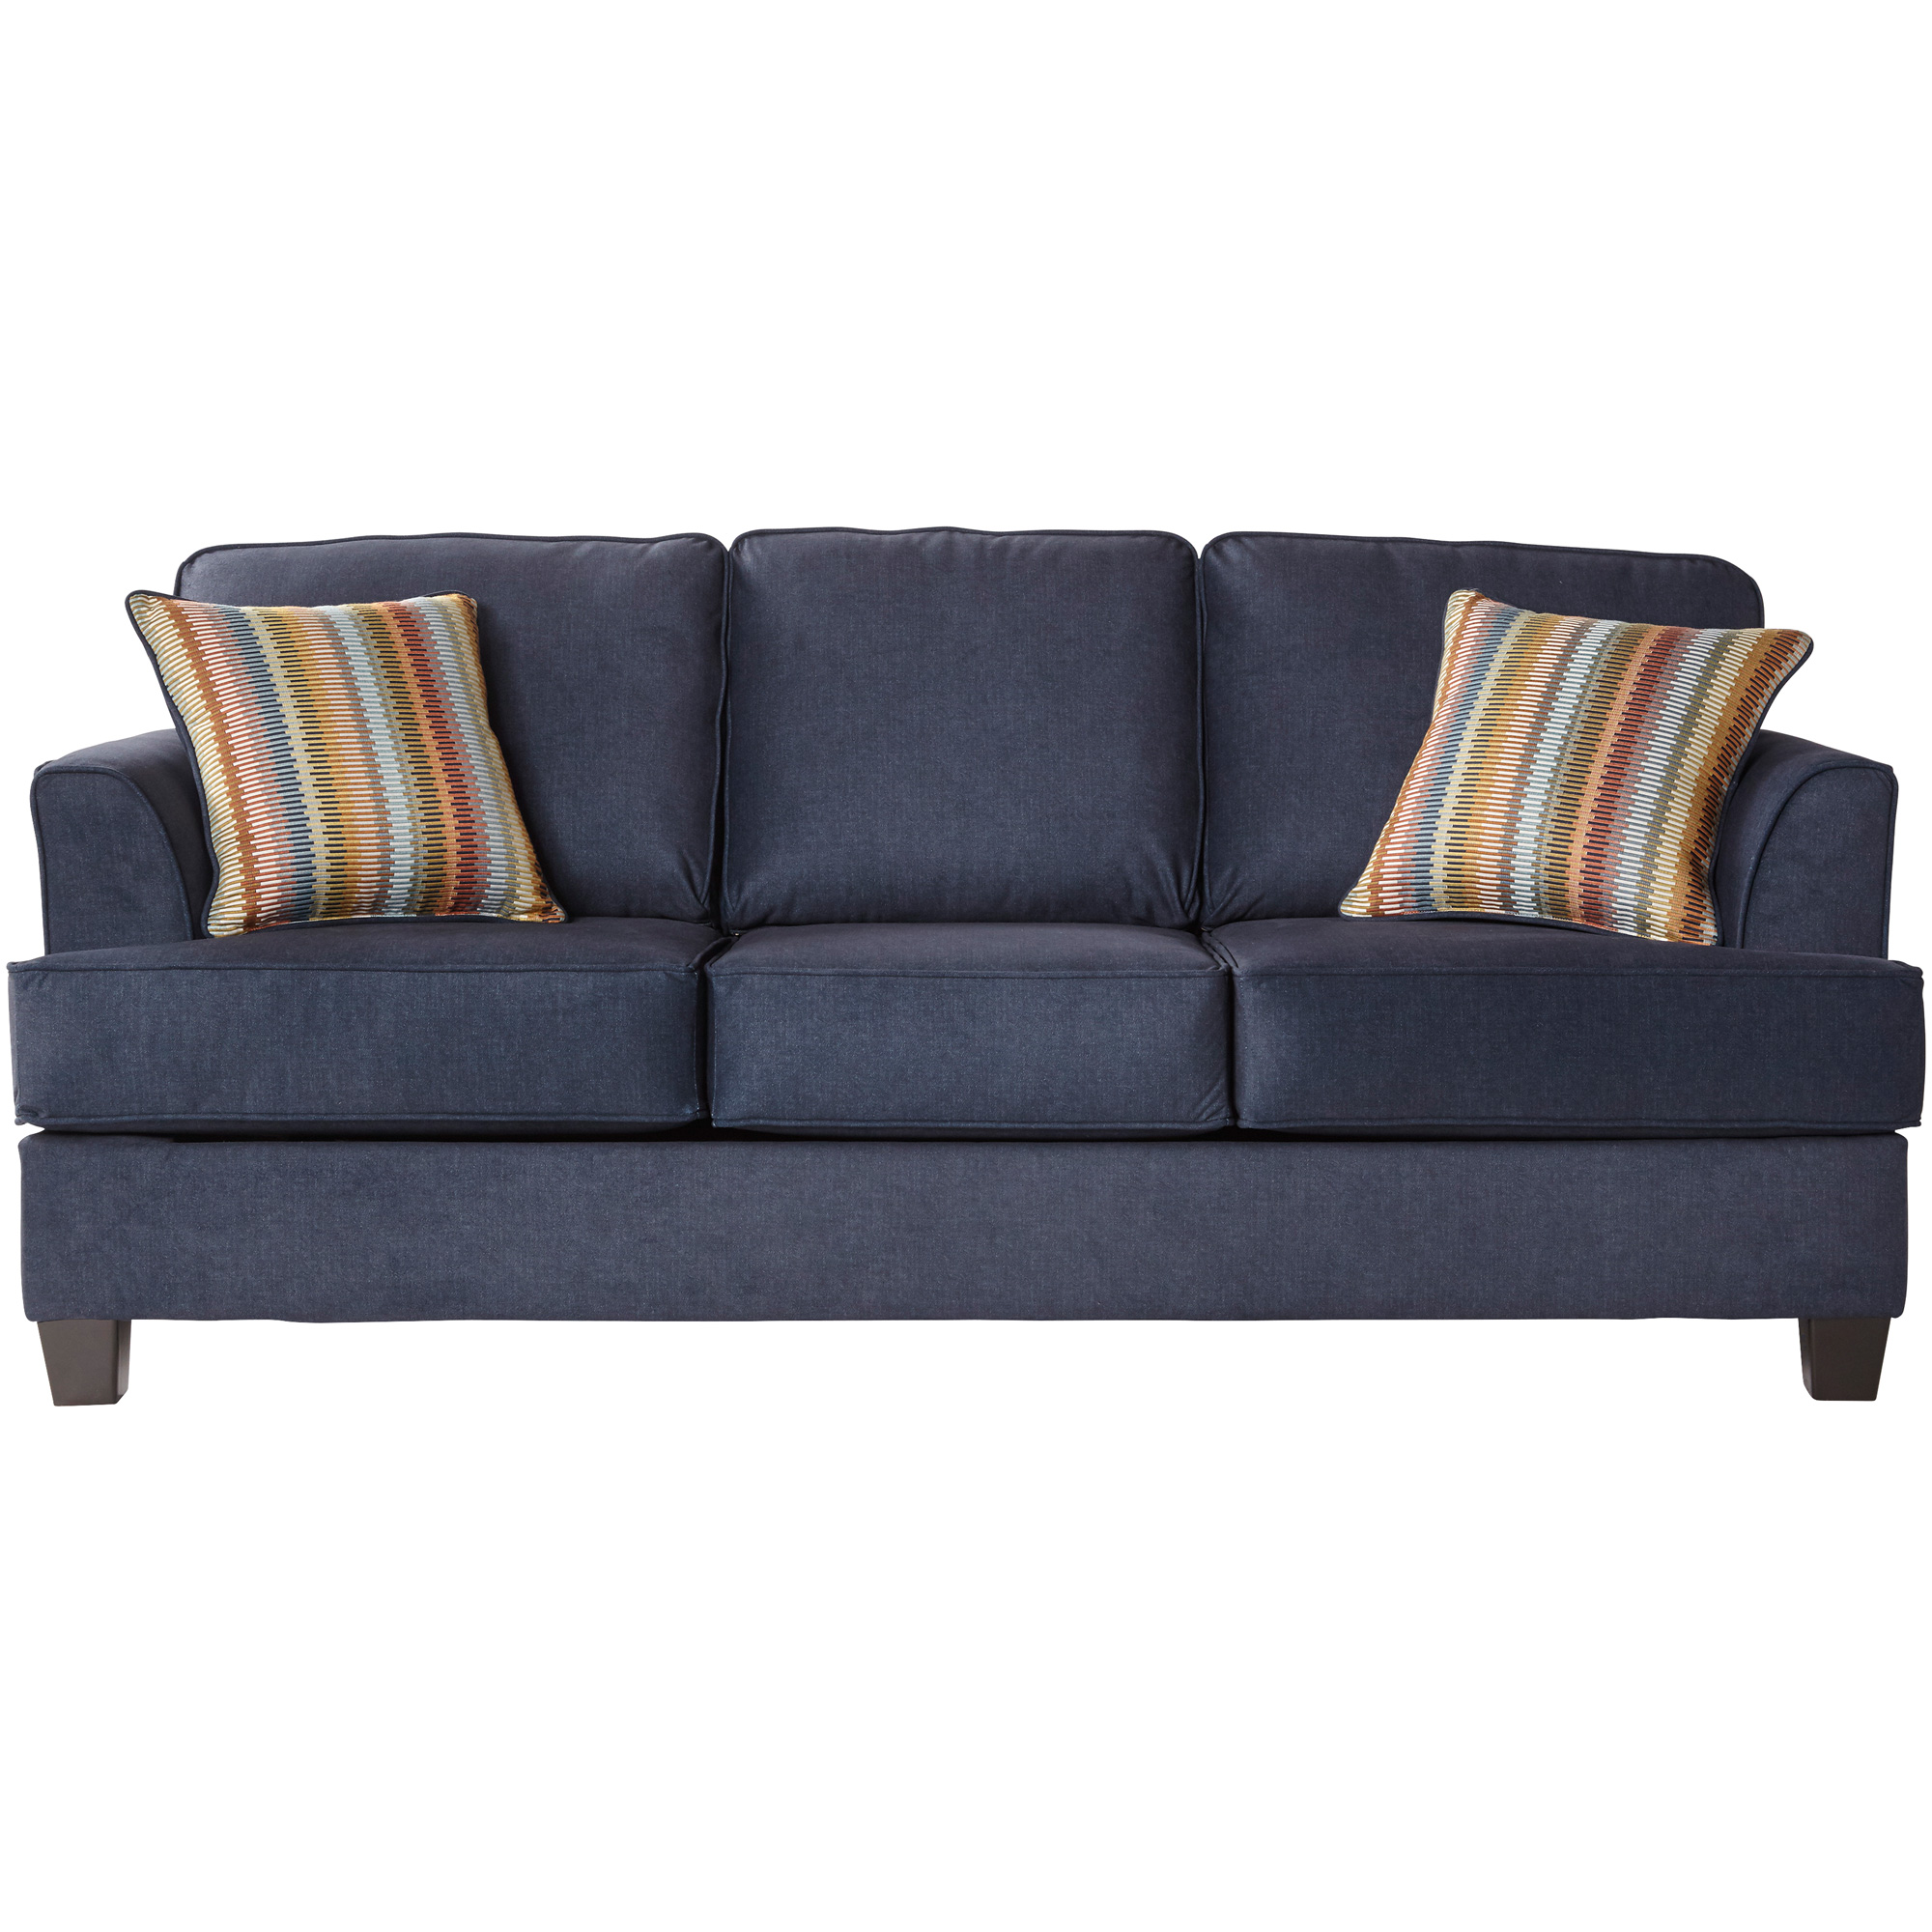 Serta Upholstery By Hughes Furniture | Aloron Beamer Vintage Queen Sleeper Sofa